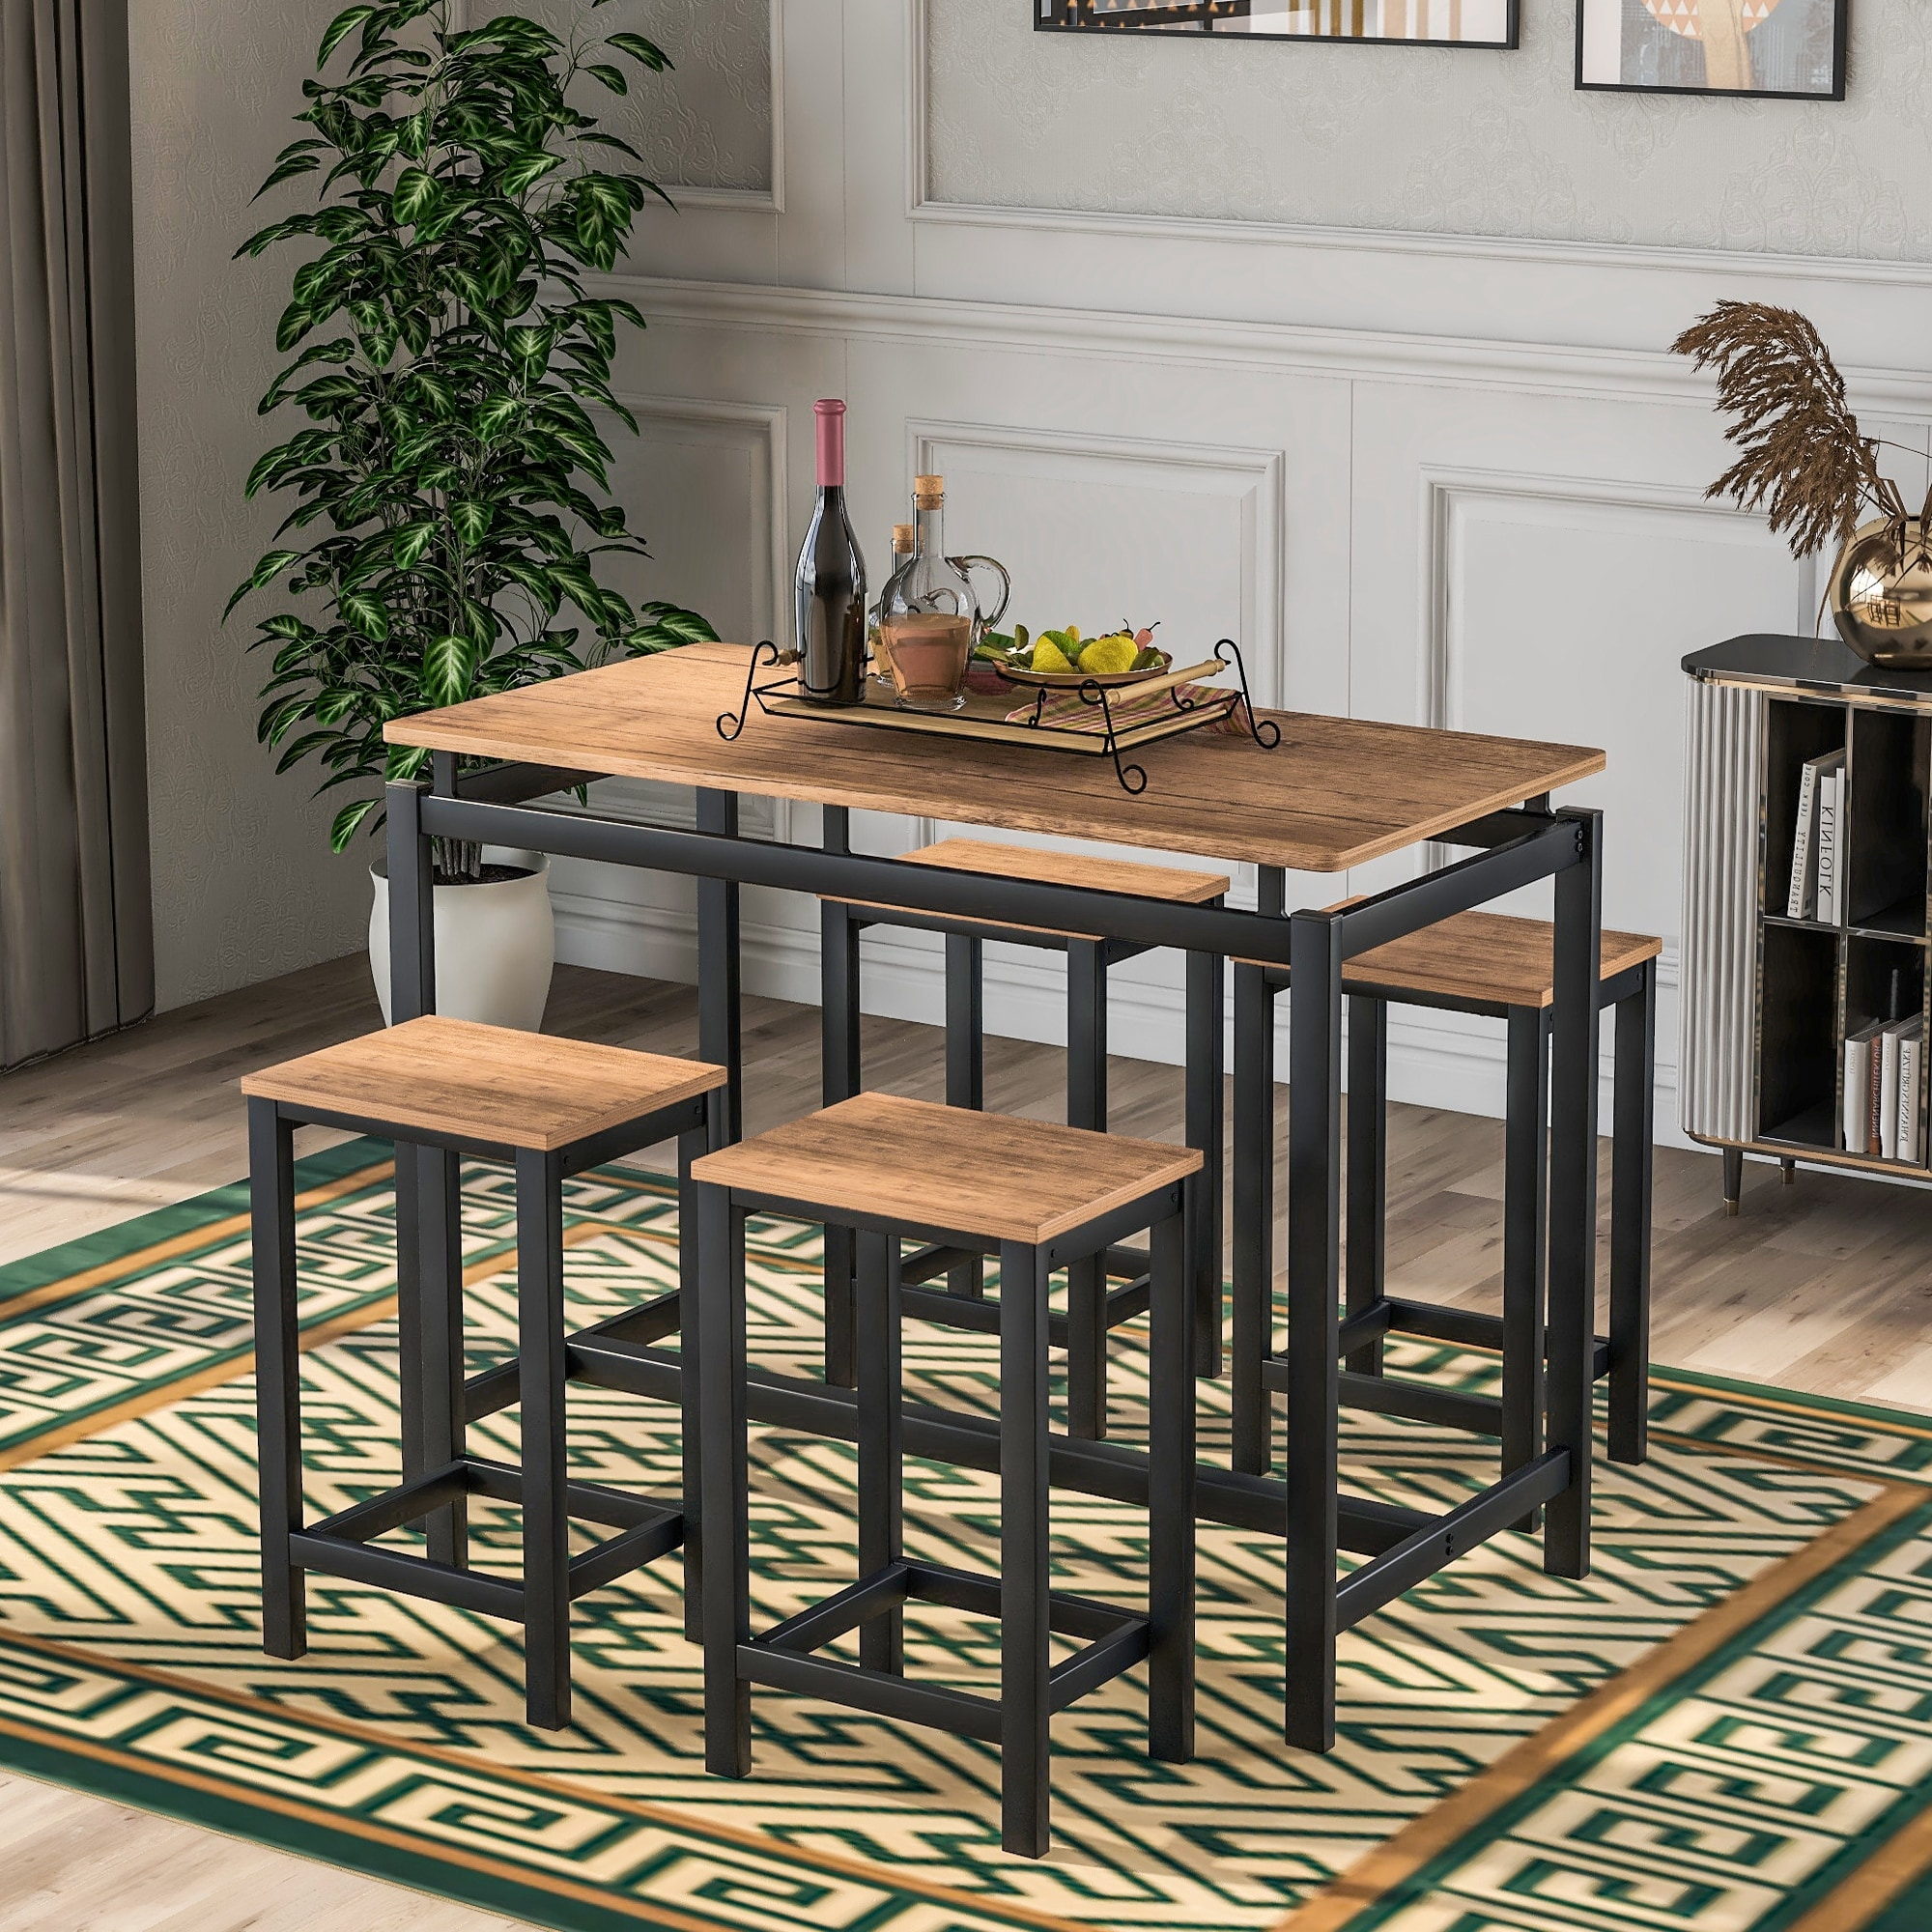 Nestfair 10-Piece Industrial Dining Table with 10 Chairs